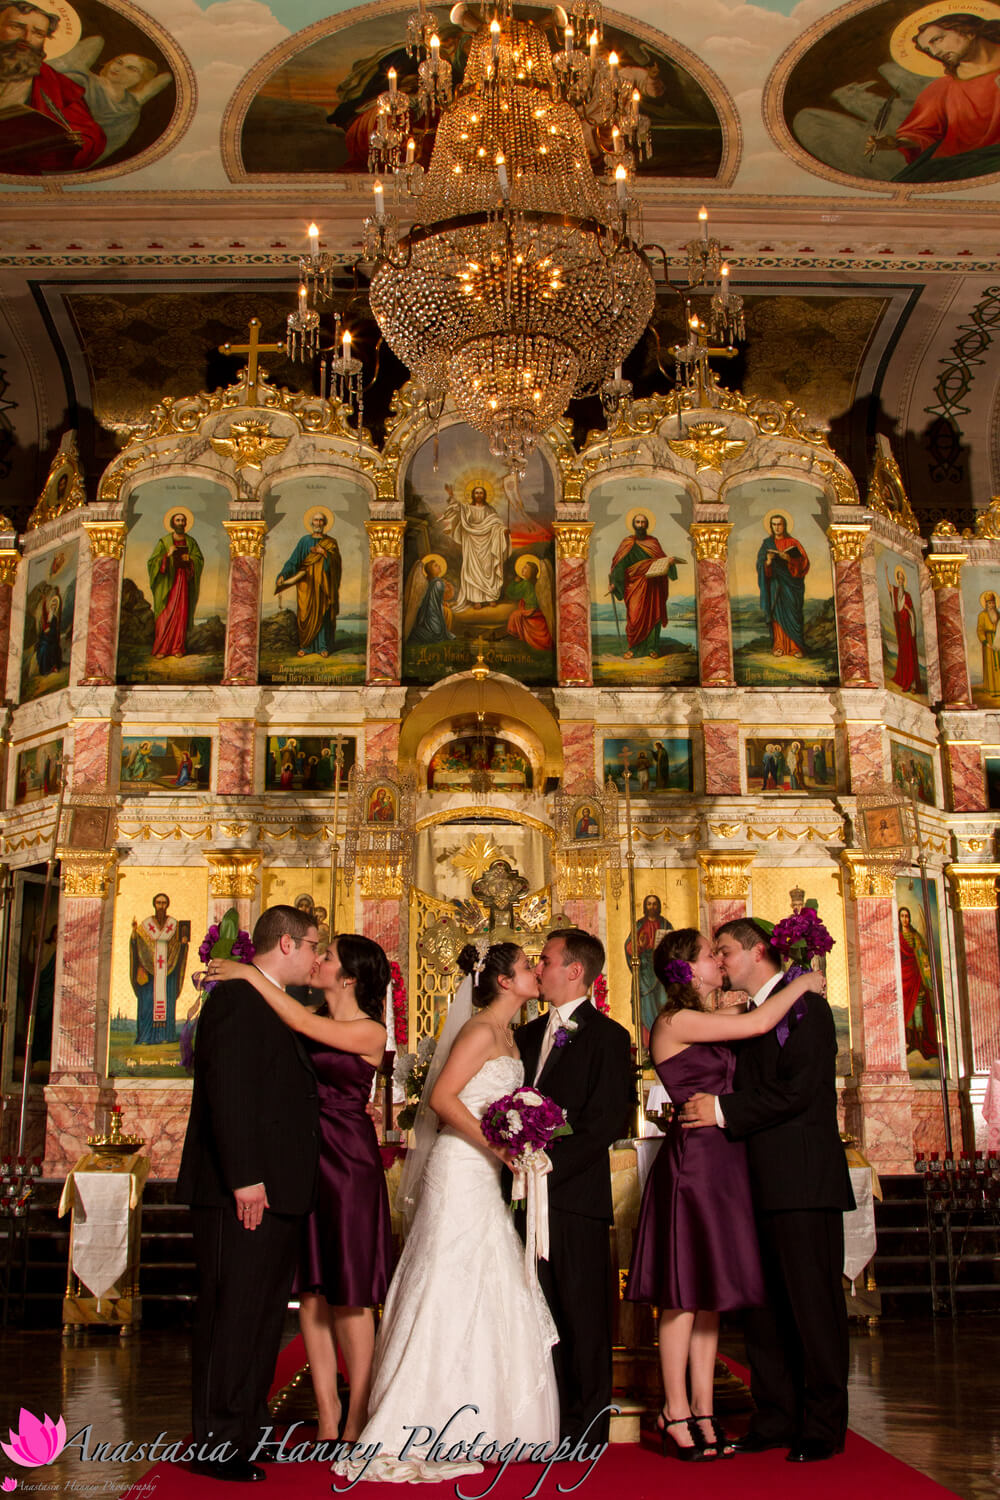 Orthodox Wedding Photography with Bridal Party in Front of Iconostas at Saint St Nicholas Eastern Orthodox Church Russian Orthodox Church in Philadelphia Pennsylvania by Anastasia Hanney Photography